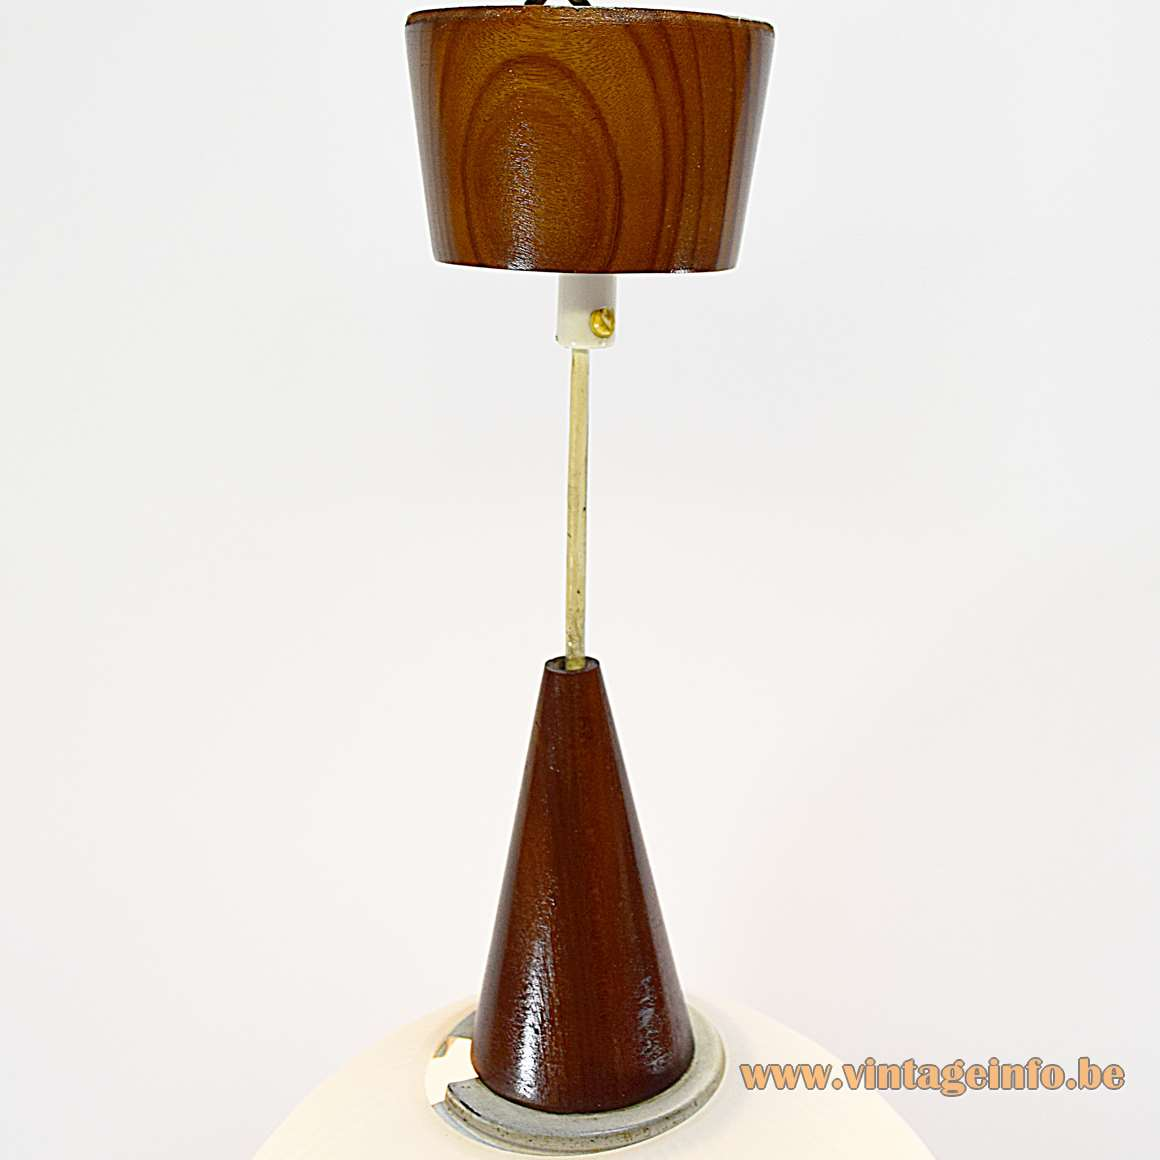 Philips white opal ribbed glass globe pendant lamp 1950s 1960s conical wood top and canopy MCM